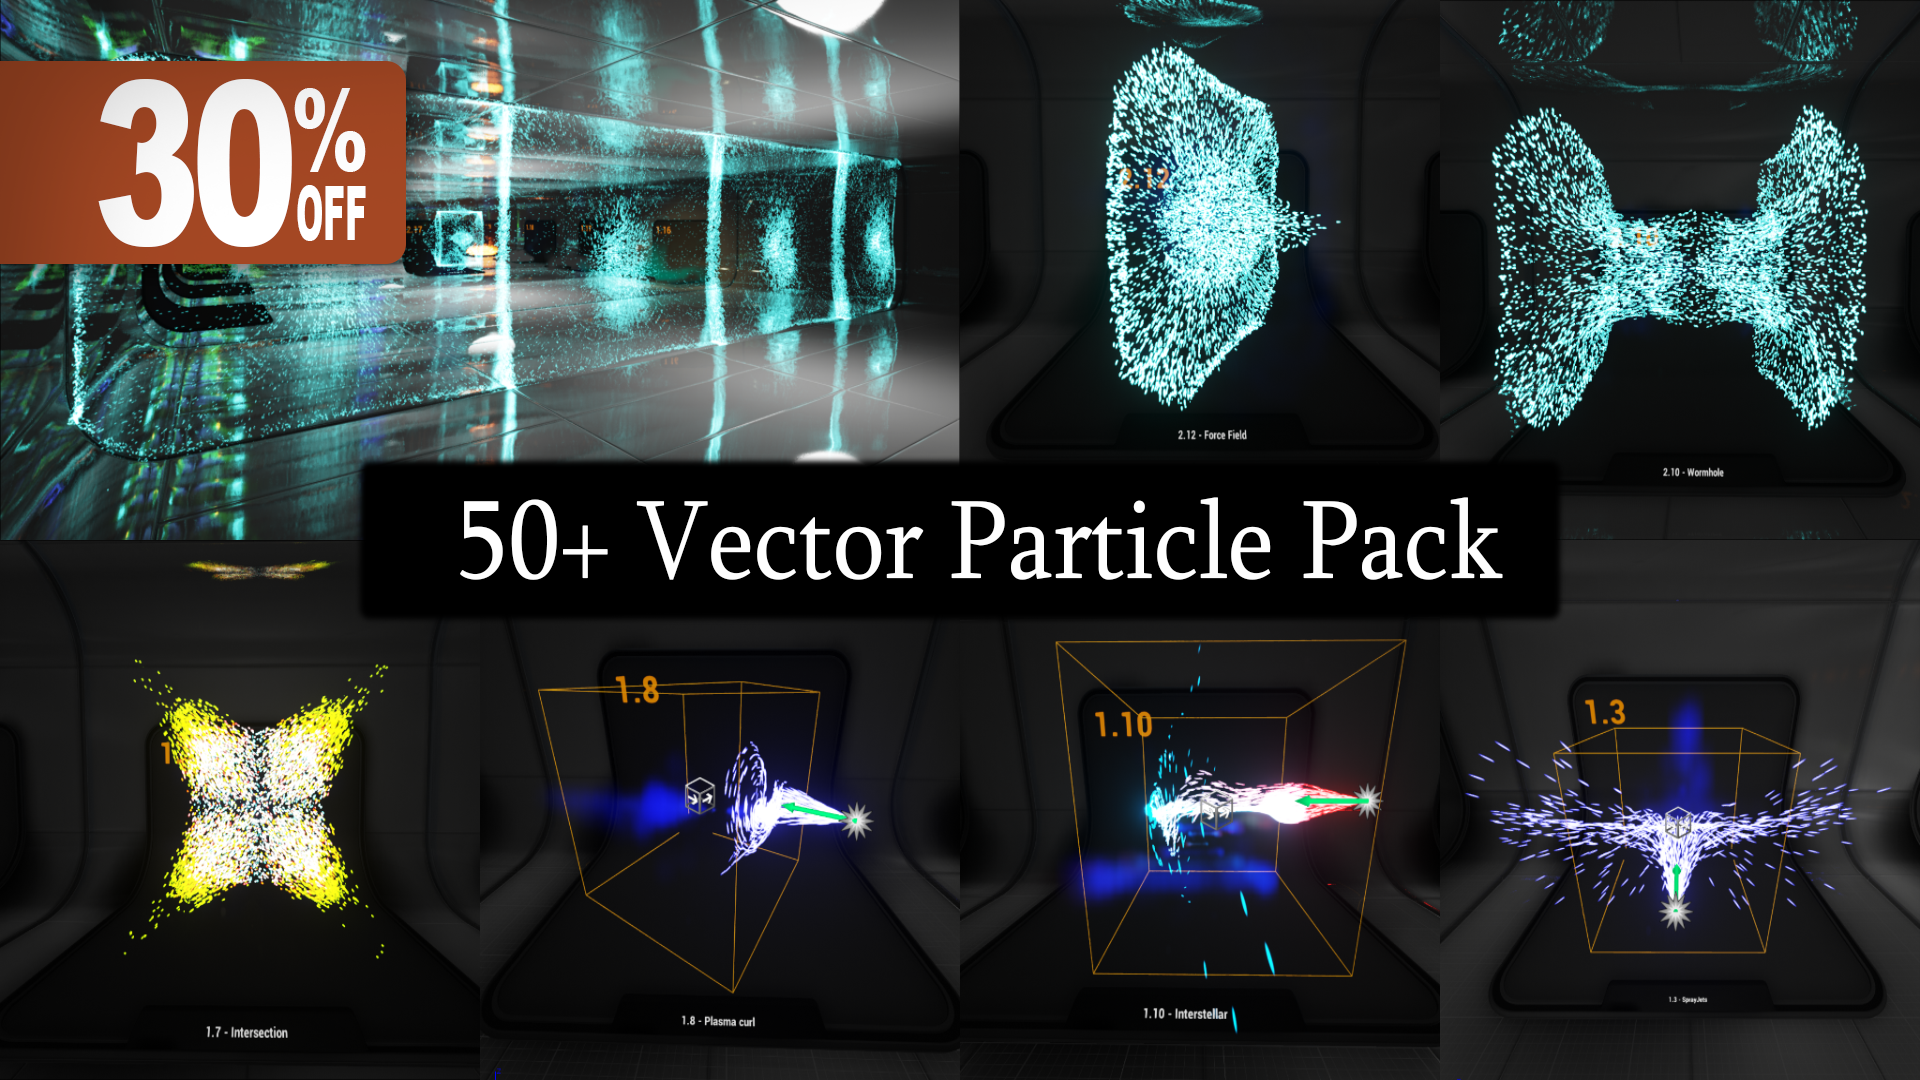 50+ Vector Particles by W3 Studios